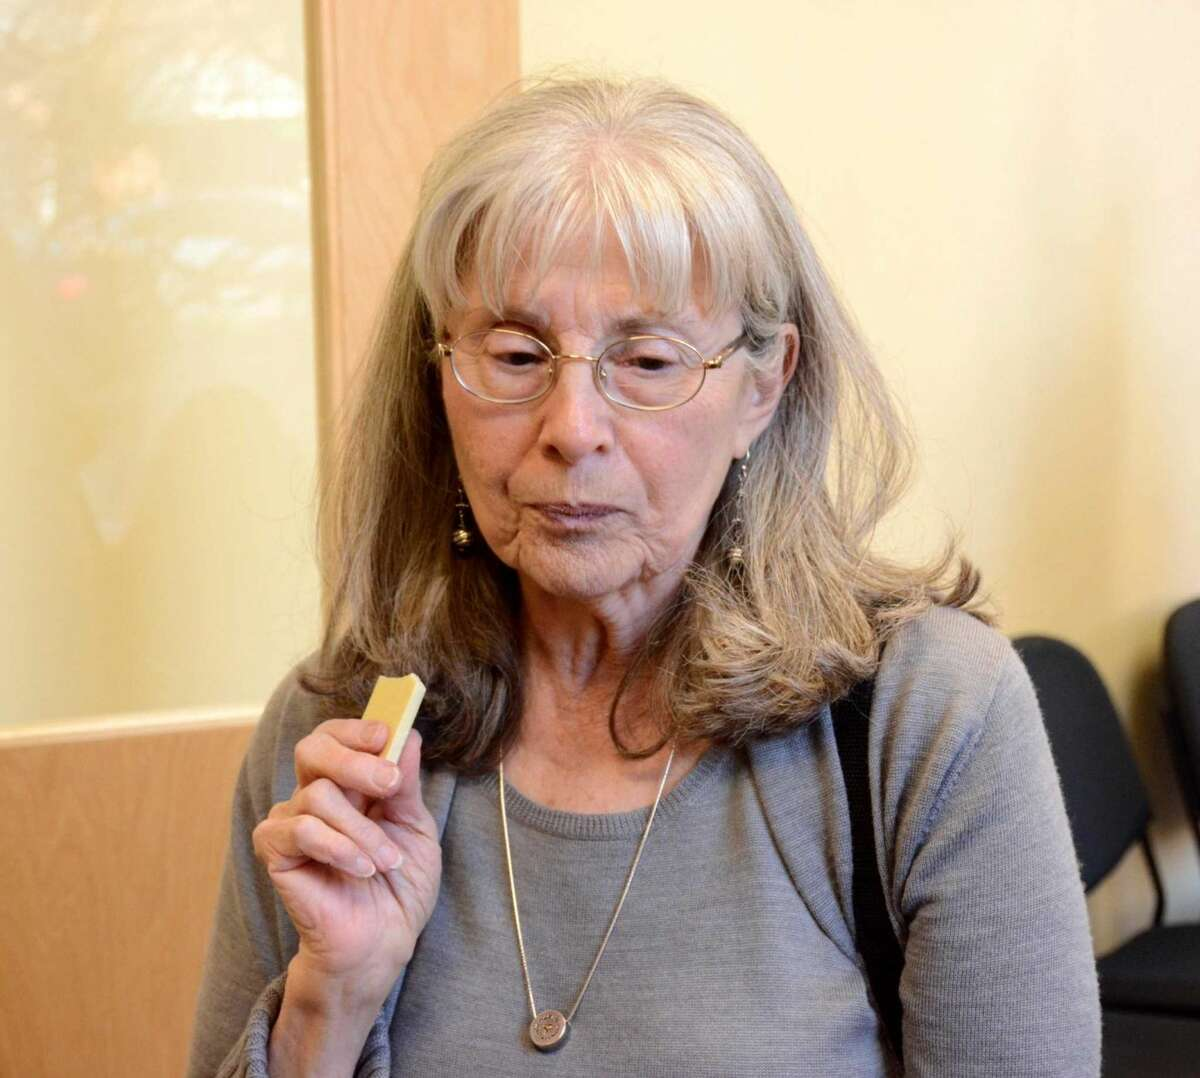 Roberta Roos from Dobbs Ferry NY takes a taste of a white chocolate sample at the kickstarter fundraiser held for Noteworthy Chocolates on Thursday April, 14,2016.